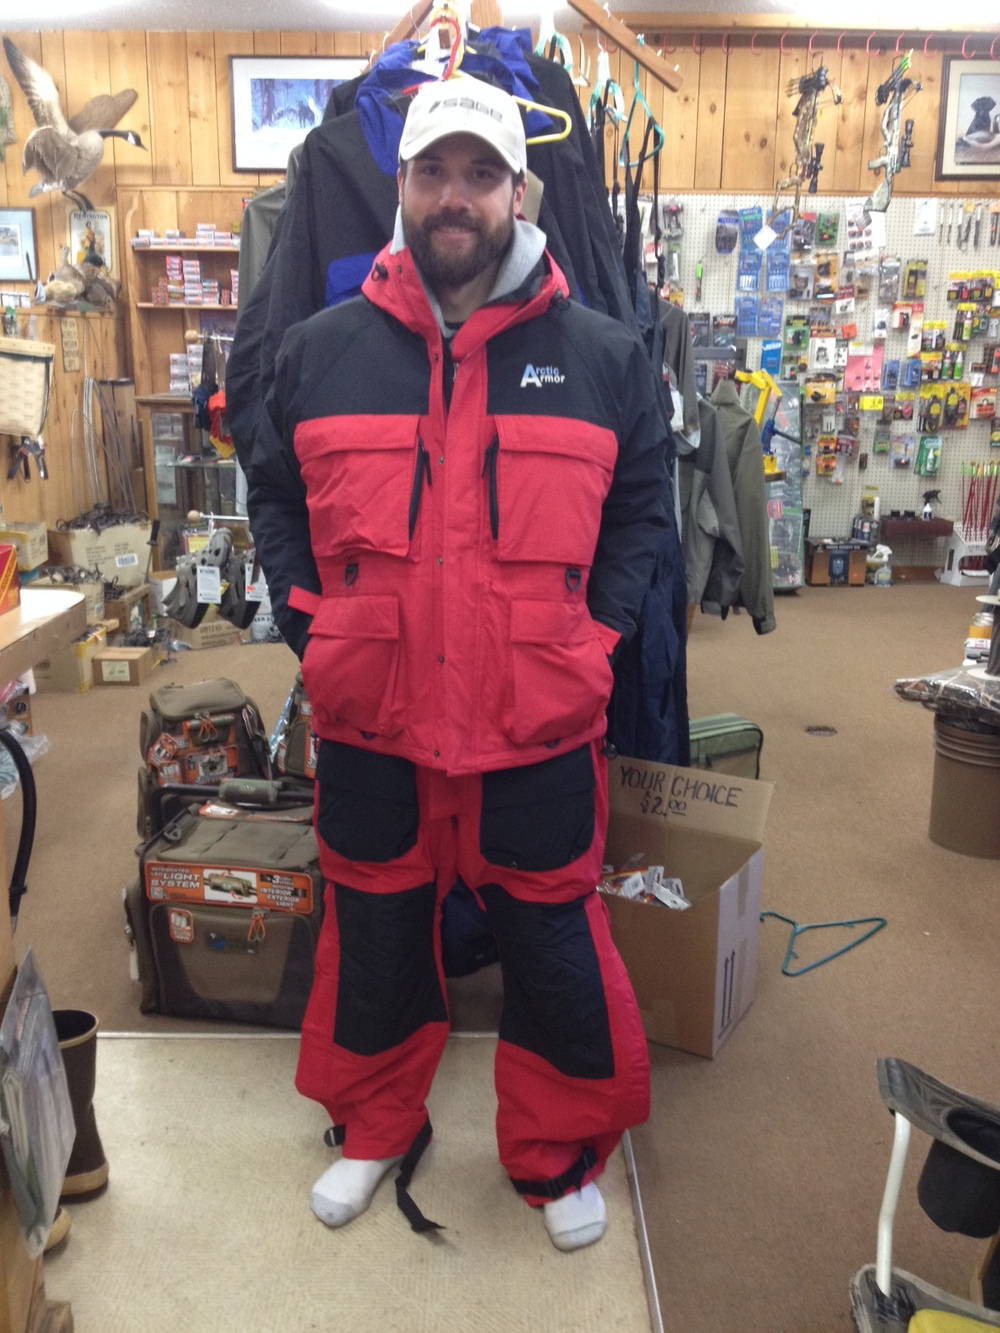 With all these cold temperatures and the quest to follow new ice, come on in and check out the waterproof, sub-zero flotation suit from Arctic Armor!!